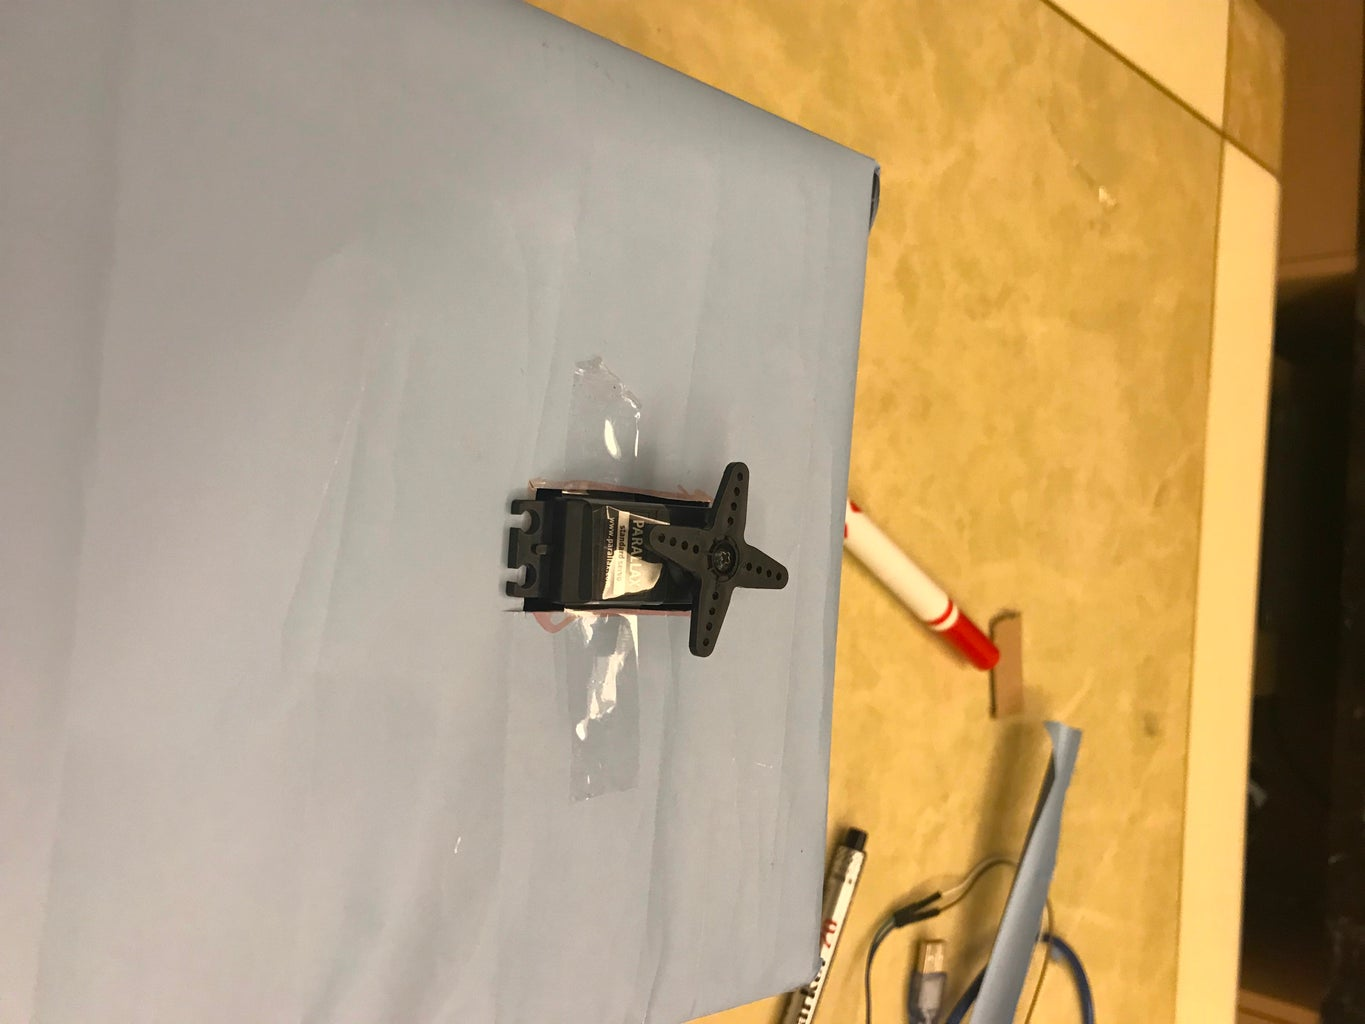 Fit the Servo Into the Rectangular Hole on the Top of the Shoe Box Cable-first in the Direction As Shown in the Picture. Then, Tape the Servo to the Surface of the Box to Make It Sturdy.